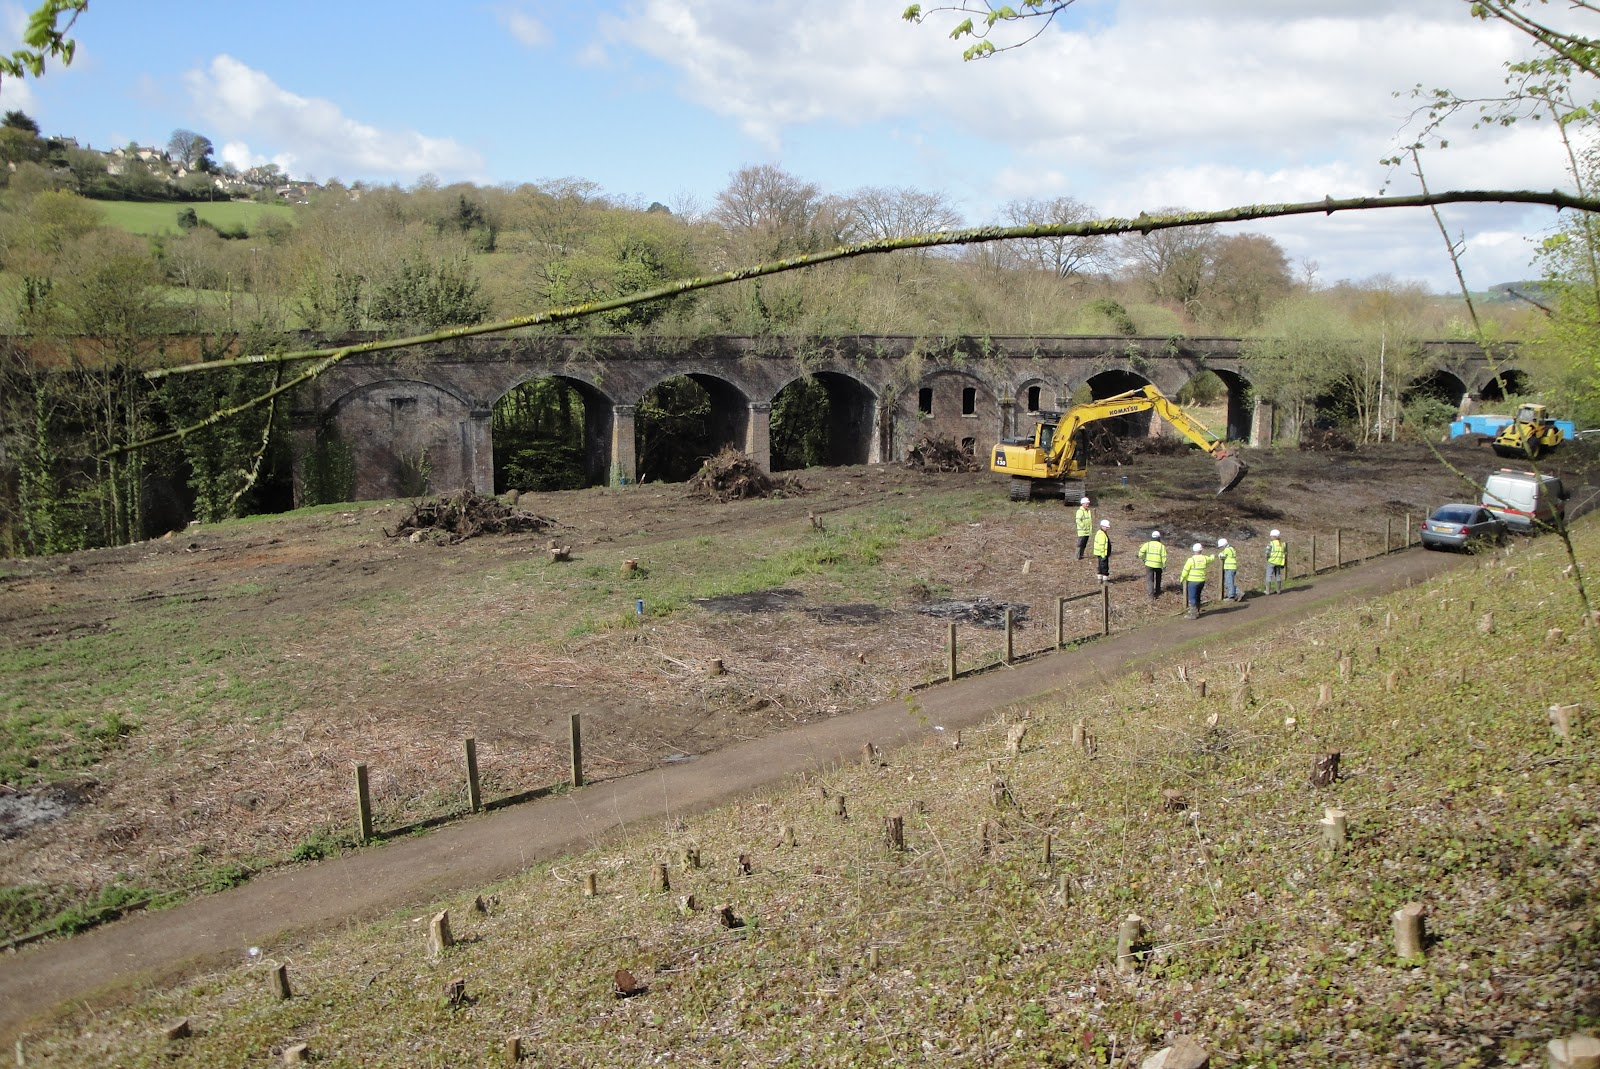 Stroud canal photos show how project is changing stroud s landscape